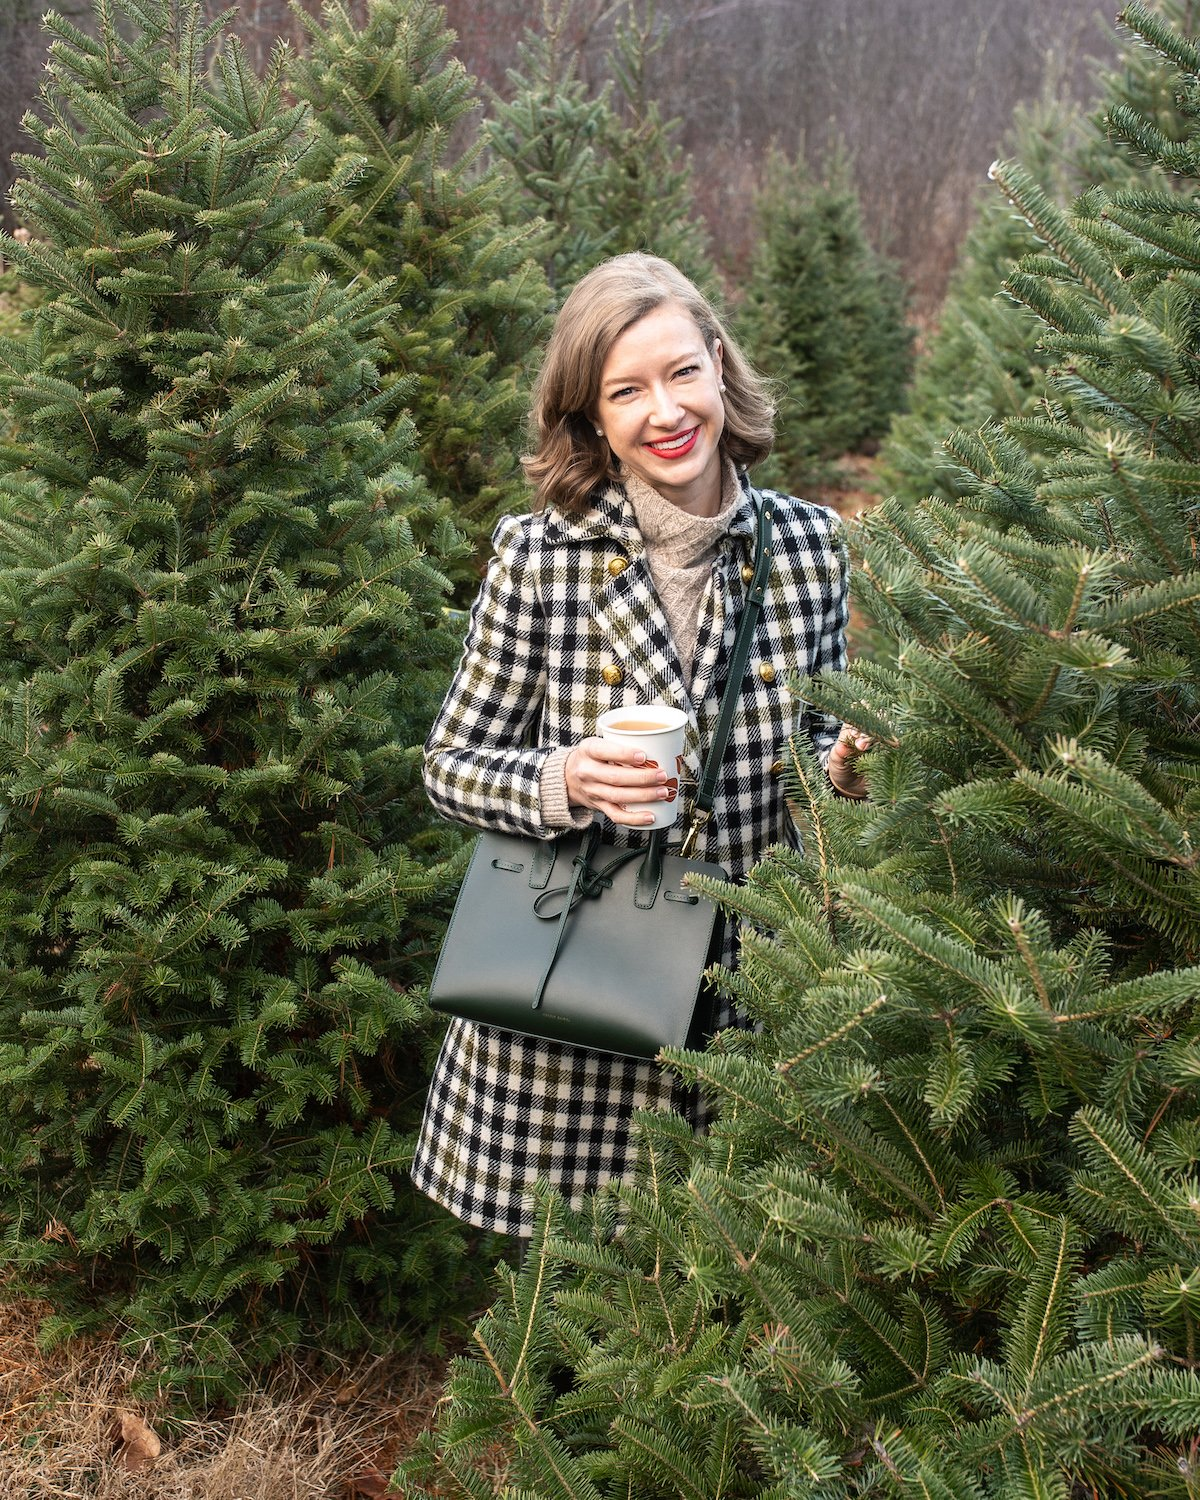 Stacie Flinner Christmas Tree IG-9.jpg